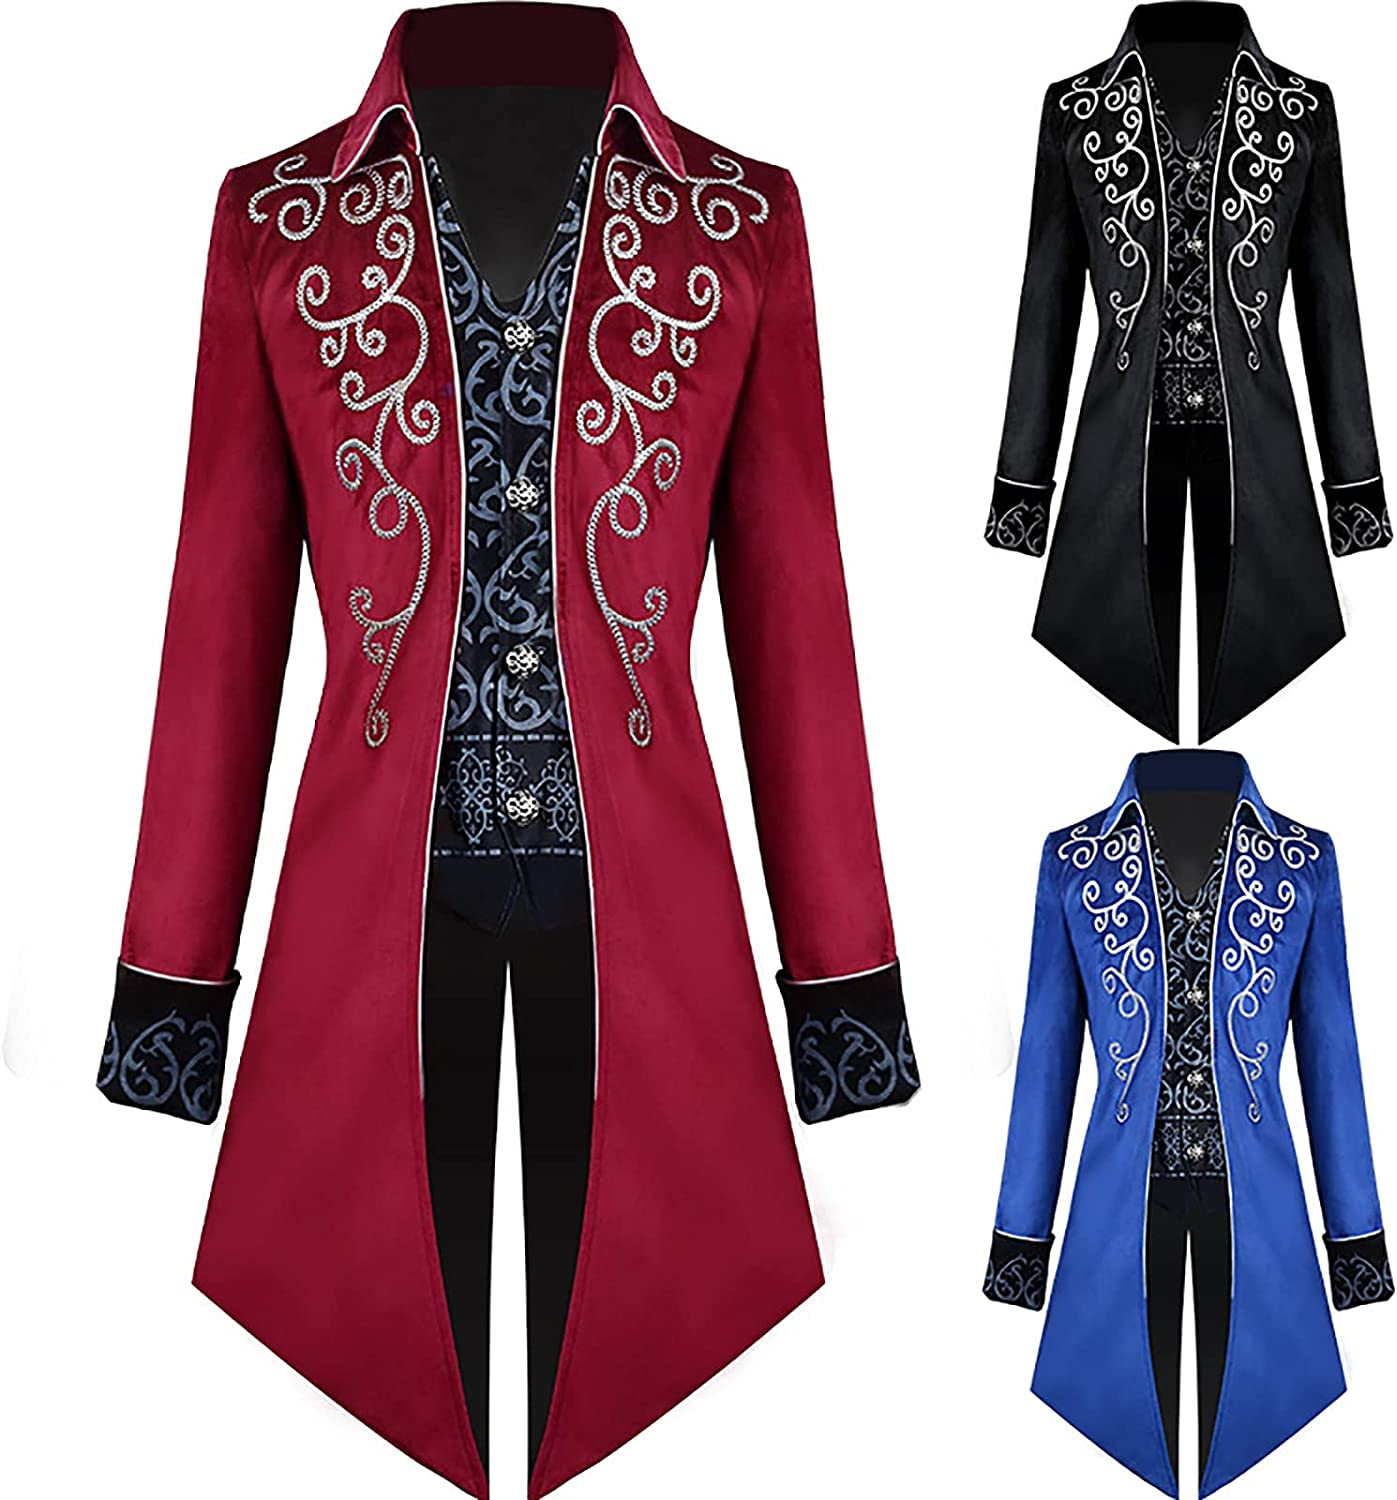 Men's low-pricing Medieval Steampunk Tailcoat Fixed price for sale Got Renaissance Pirate Vampire